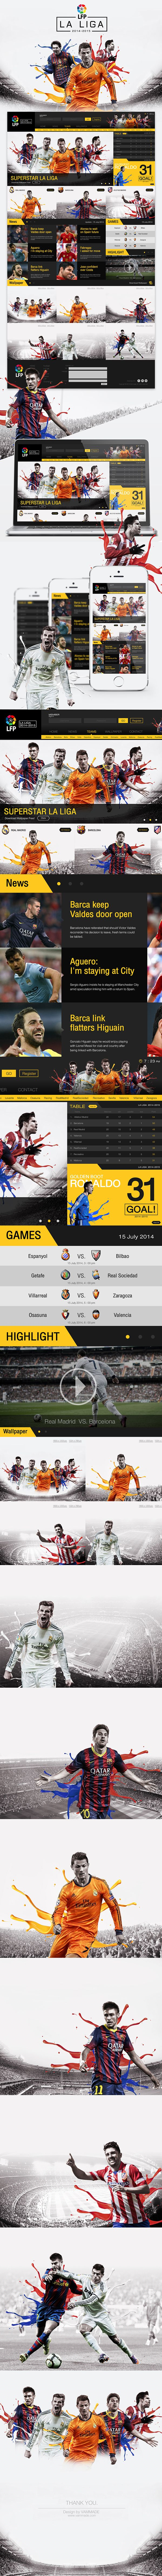 LA LIGA 2014 - 2015 Website by Chakkraphon Phonmidet, via Behance